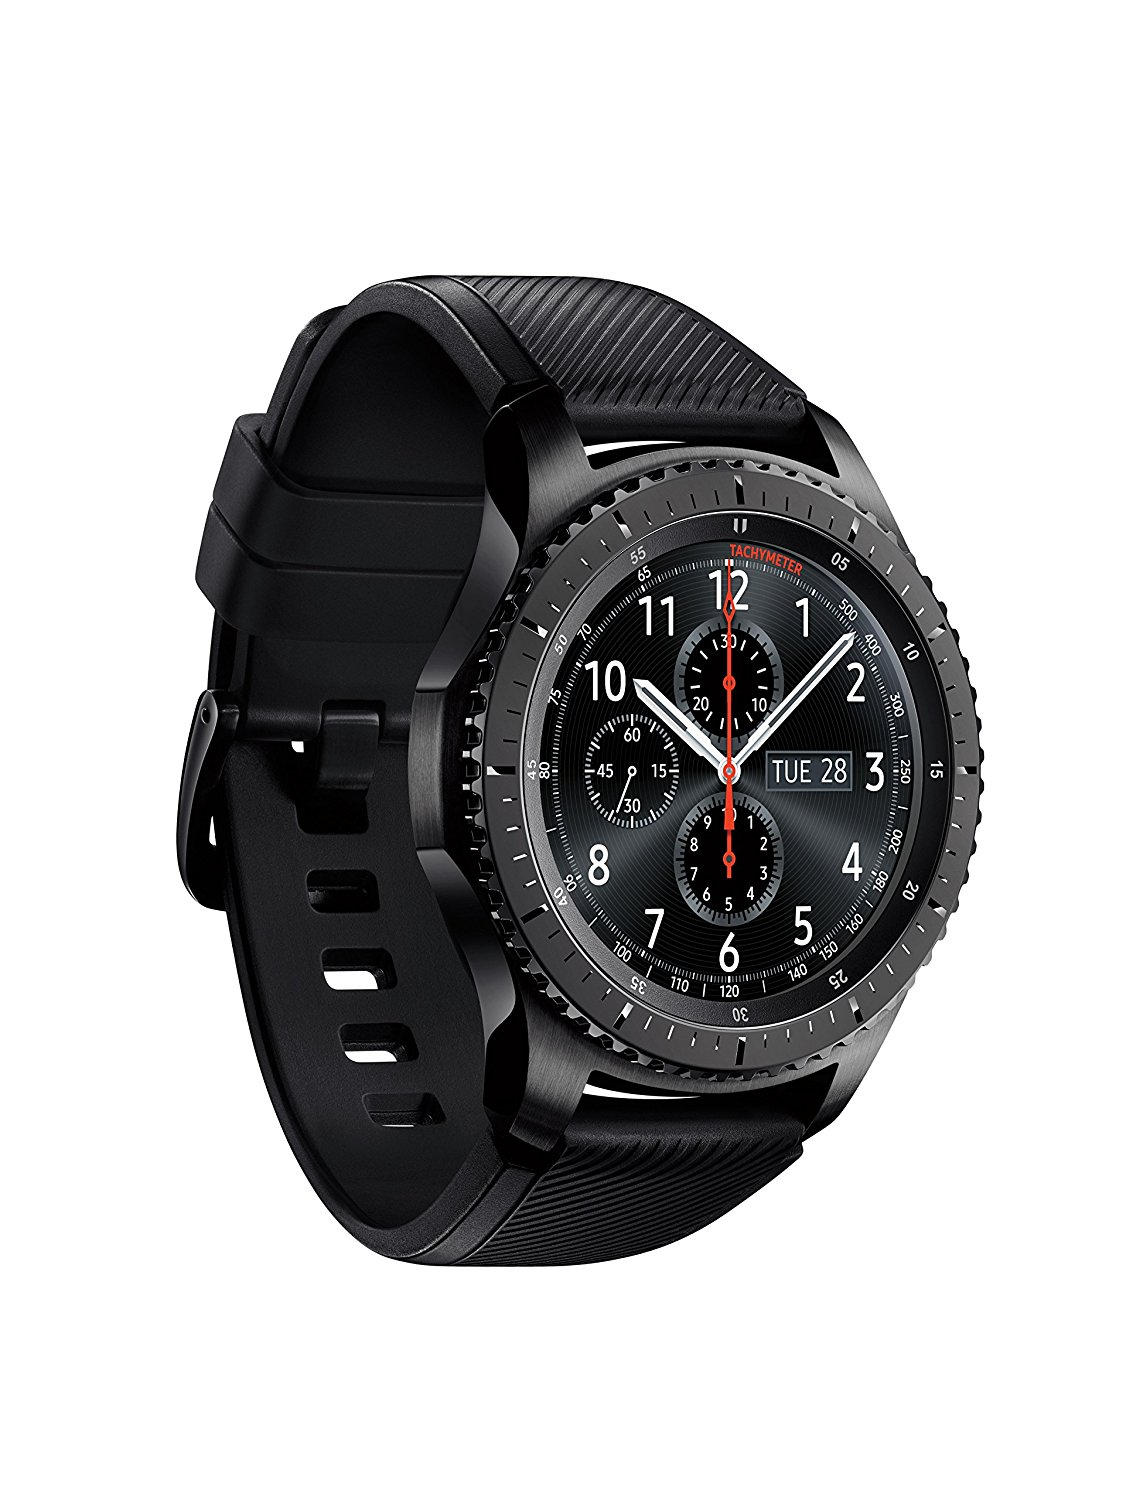 jual samsung galaxy gear s3 frontier tokopedia. Black Bedroom Furniture Sets. Home Design Ideas